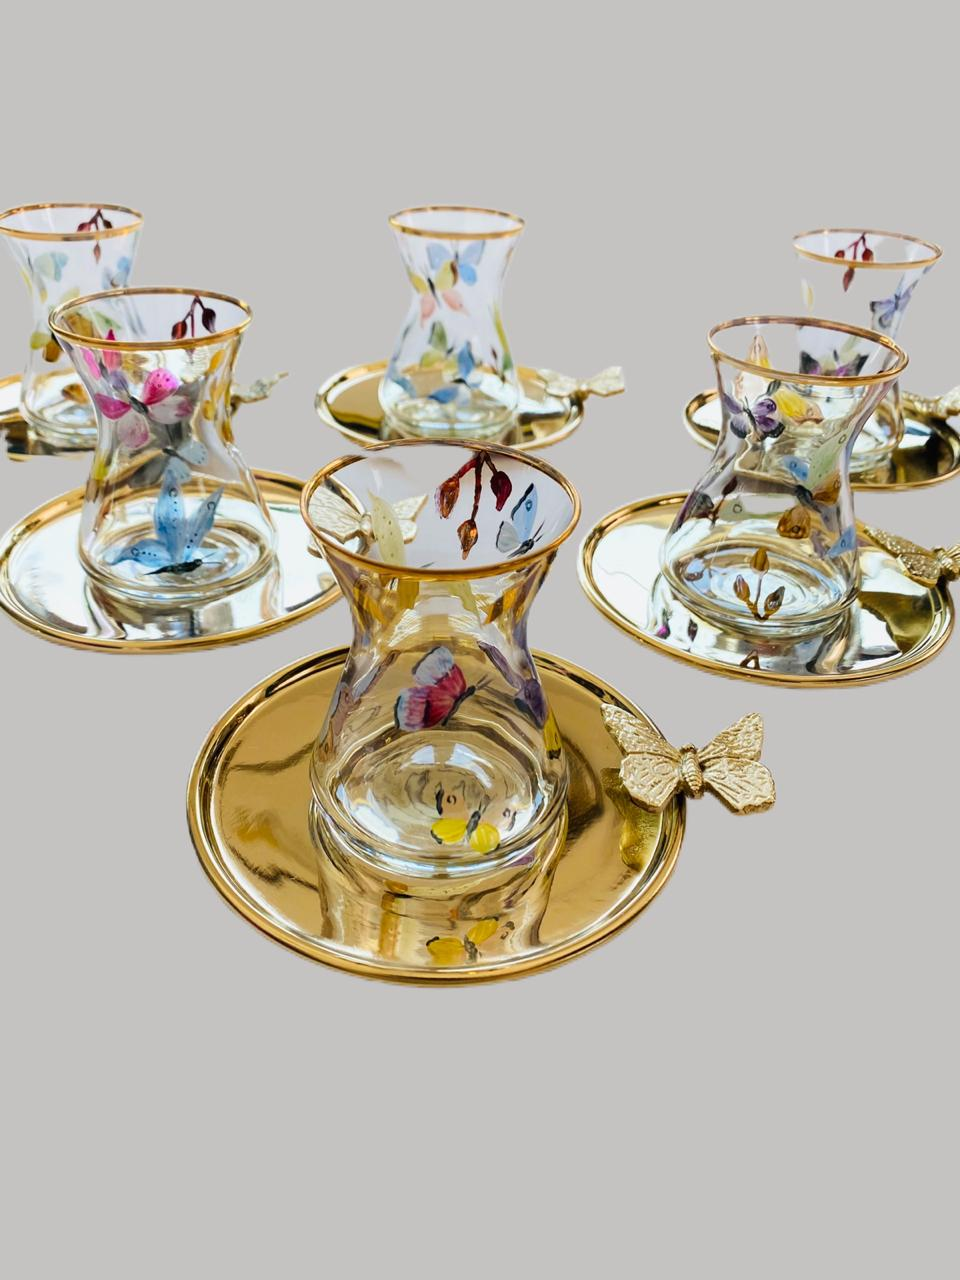 Butterfly Tea Cups with Plate - Set of 6